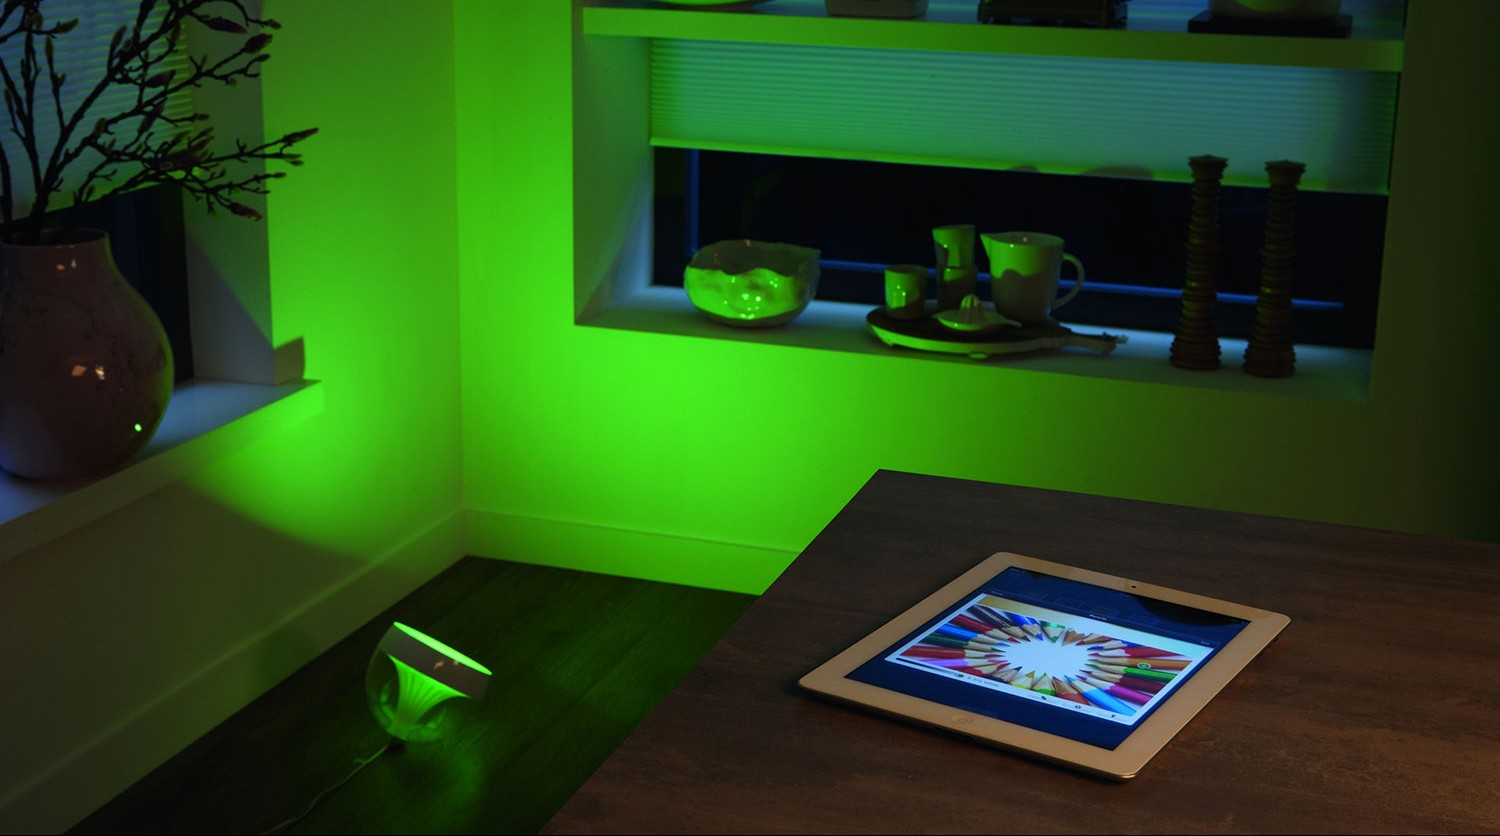 philips hue mit ifttt verbinden licht an bei dunkelheit vernetzte welt. Black Bedroom Furniture Sets. Home Design Ideas